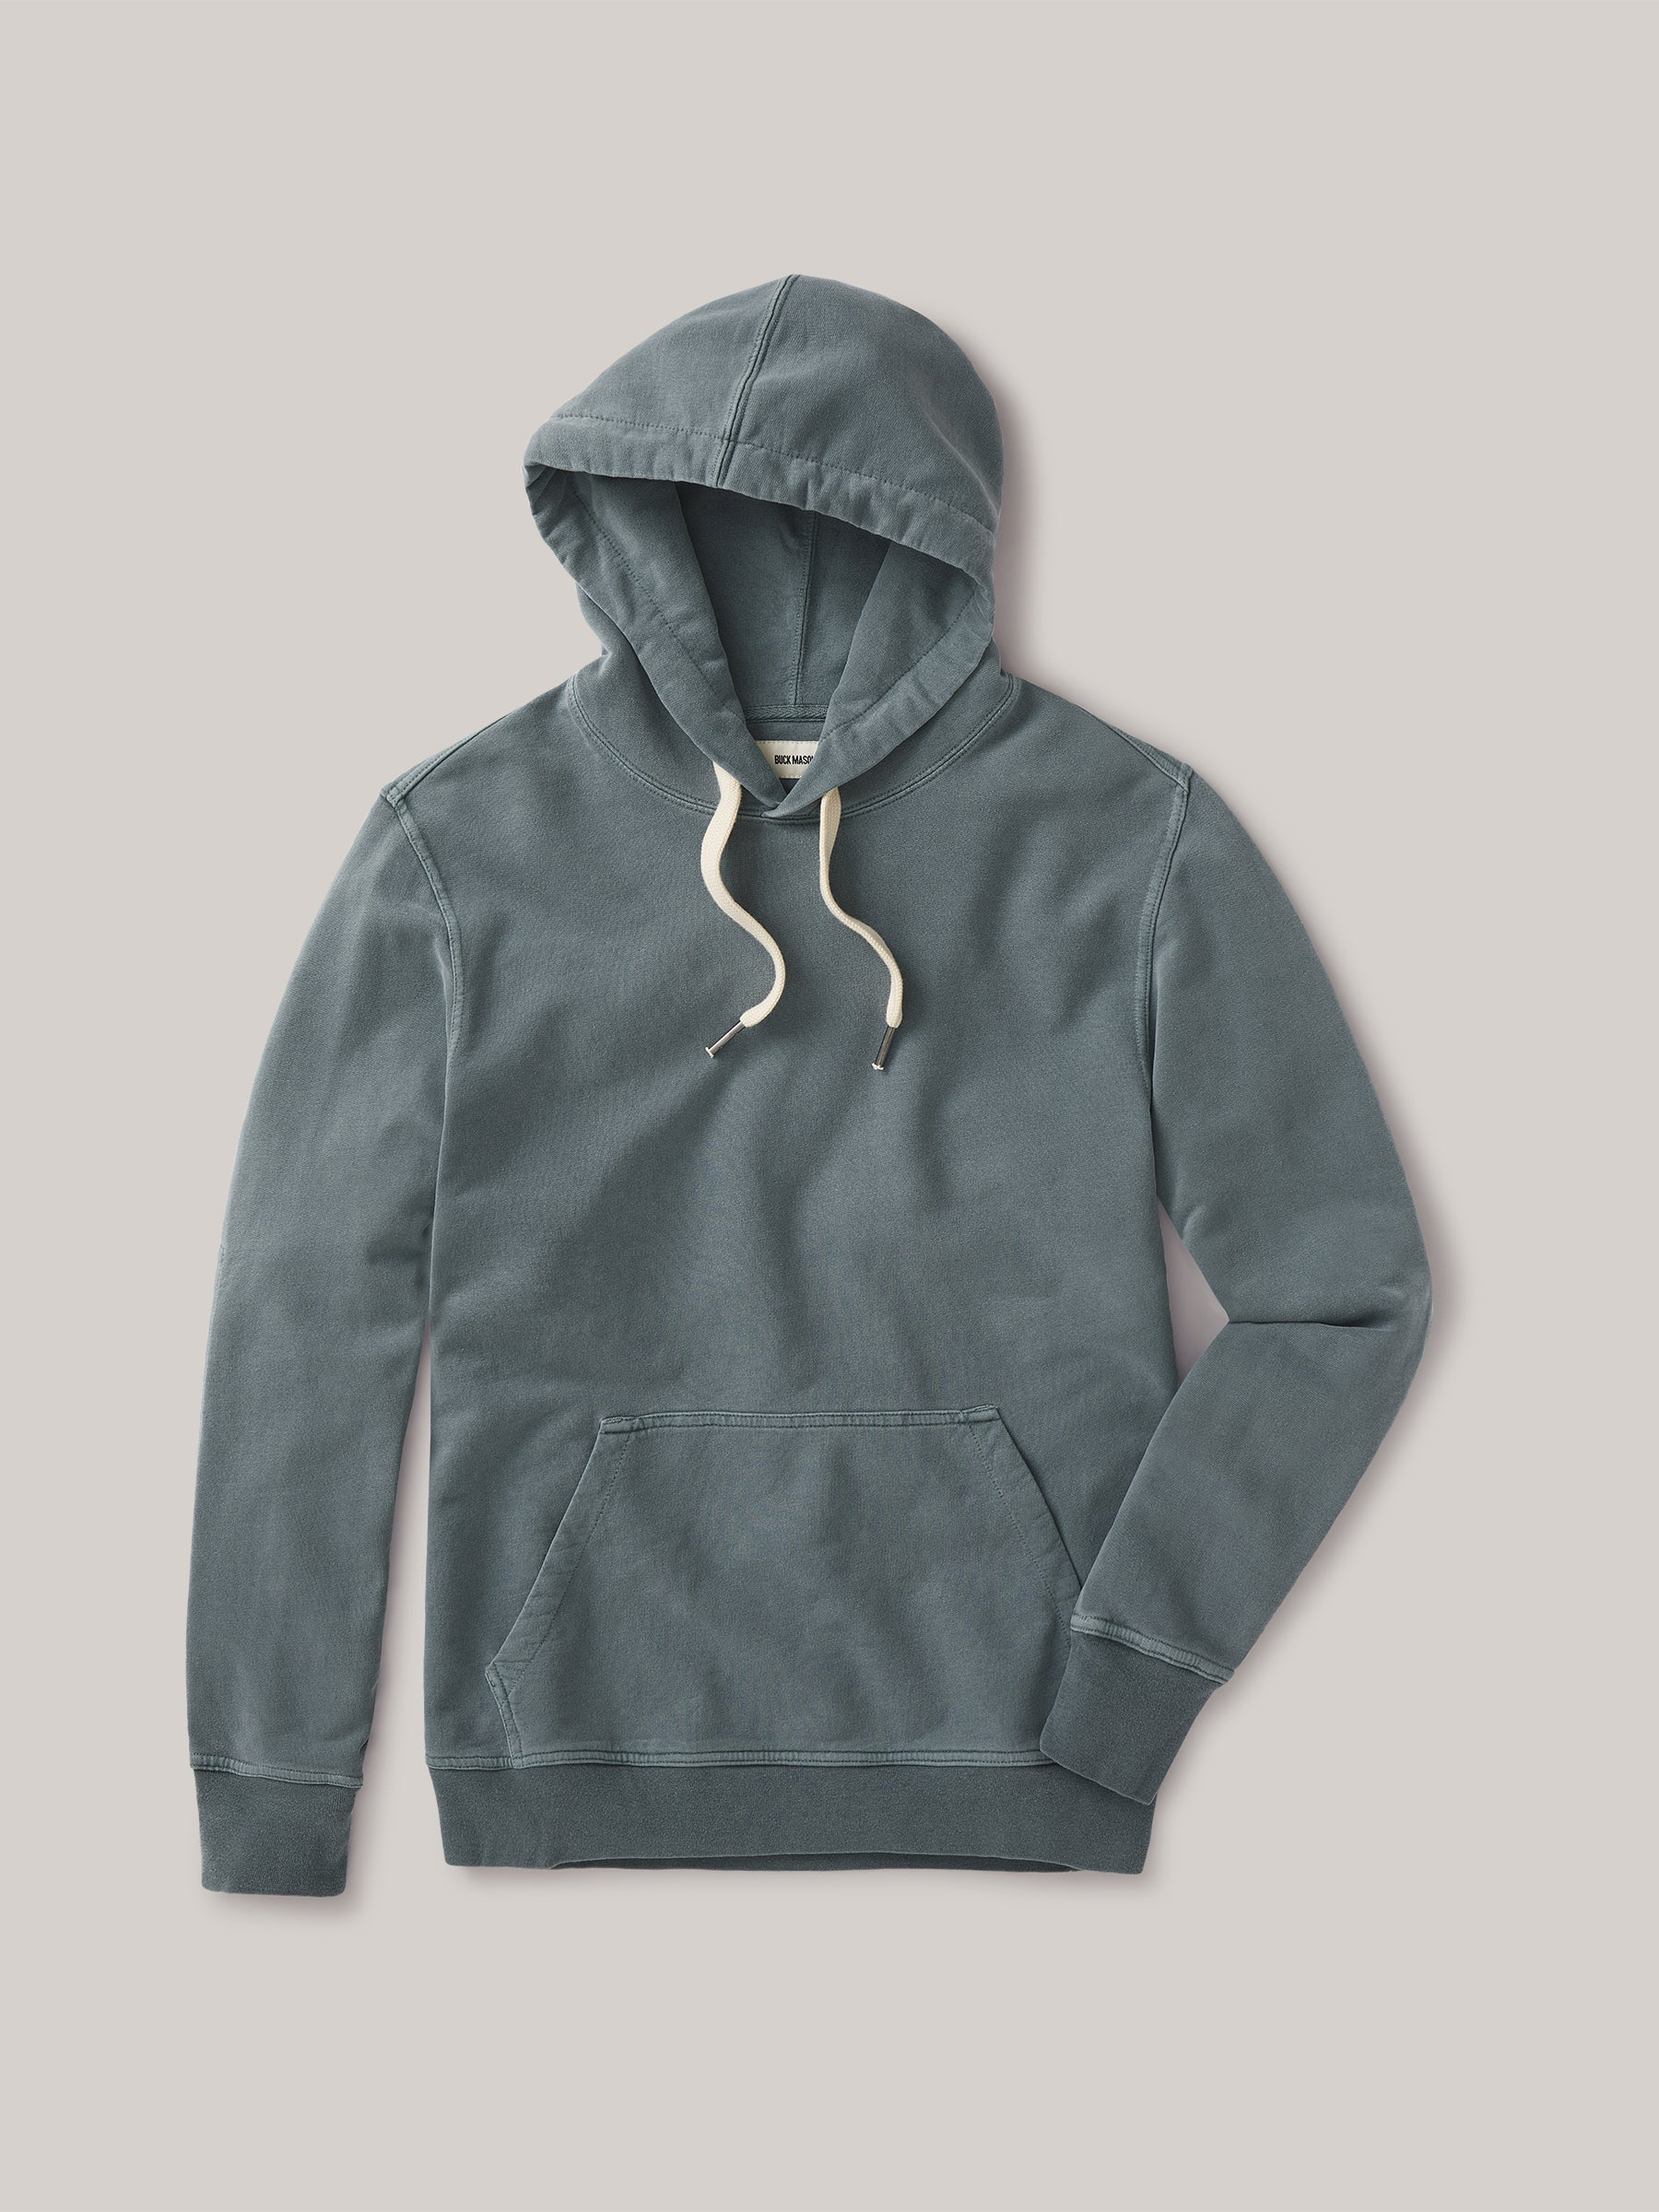 Buck Mason - Seal Venice Wash Brushed Loopback Hooded Sweatshirt